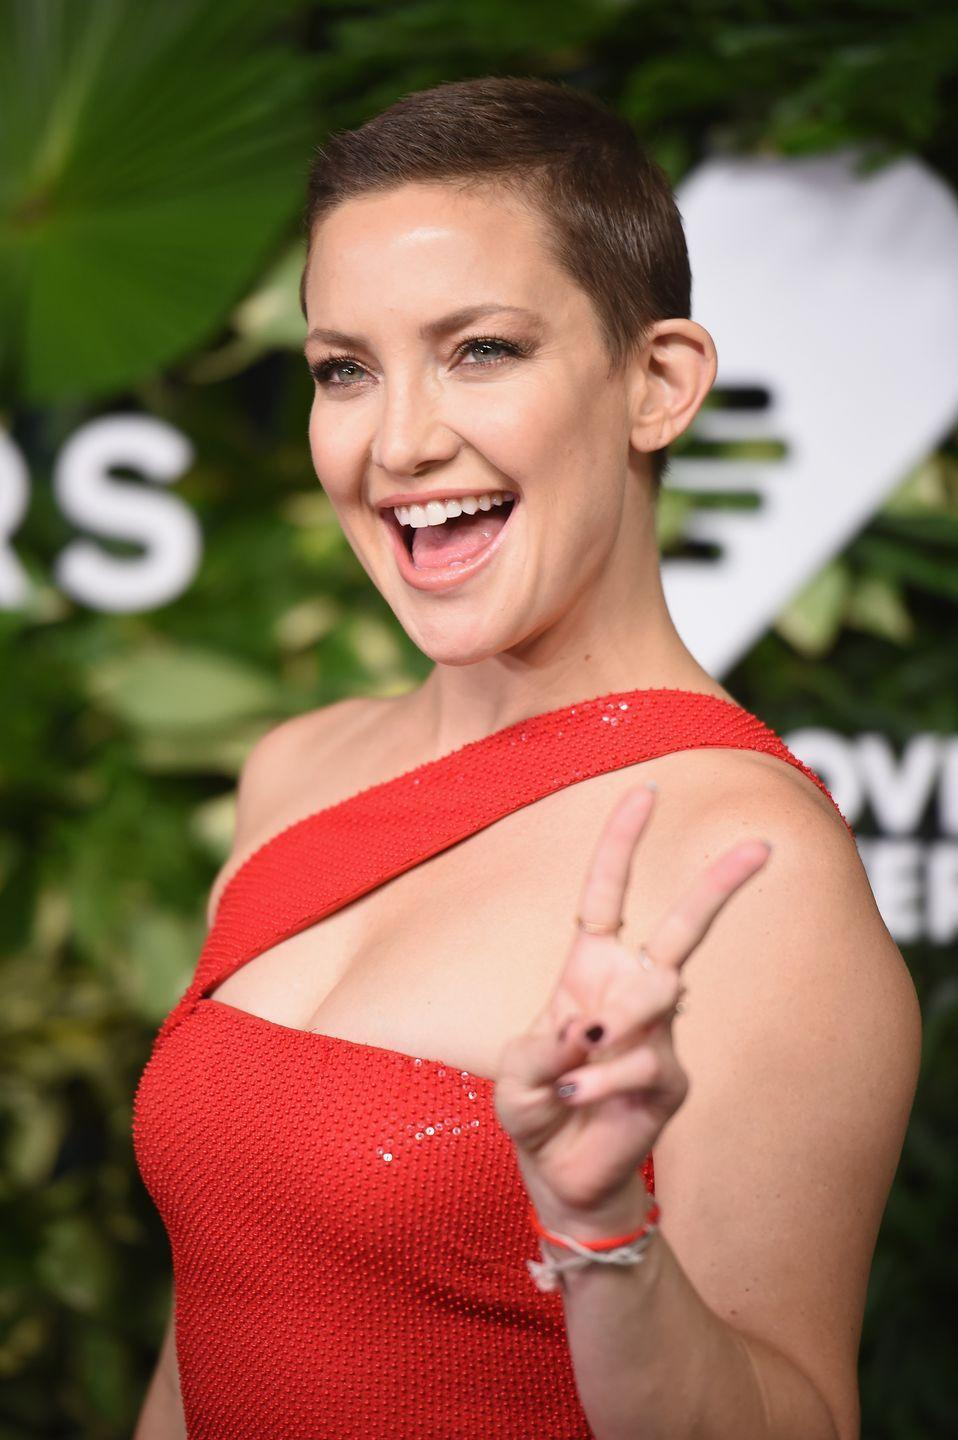 <p>When it was recommended that Kate Hudson shave her head for her role in <em>Music</em>, the actress fully embraced the challenge. Hudson traded her blonde waves for a brunette buzz cut in 2017. </p>